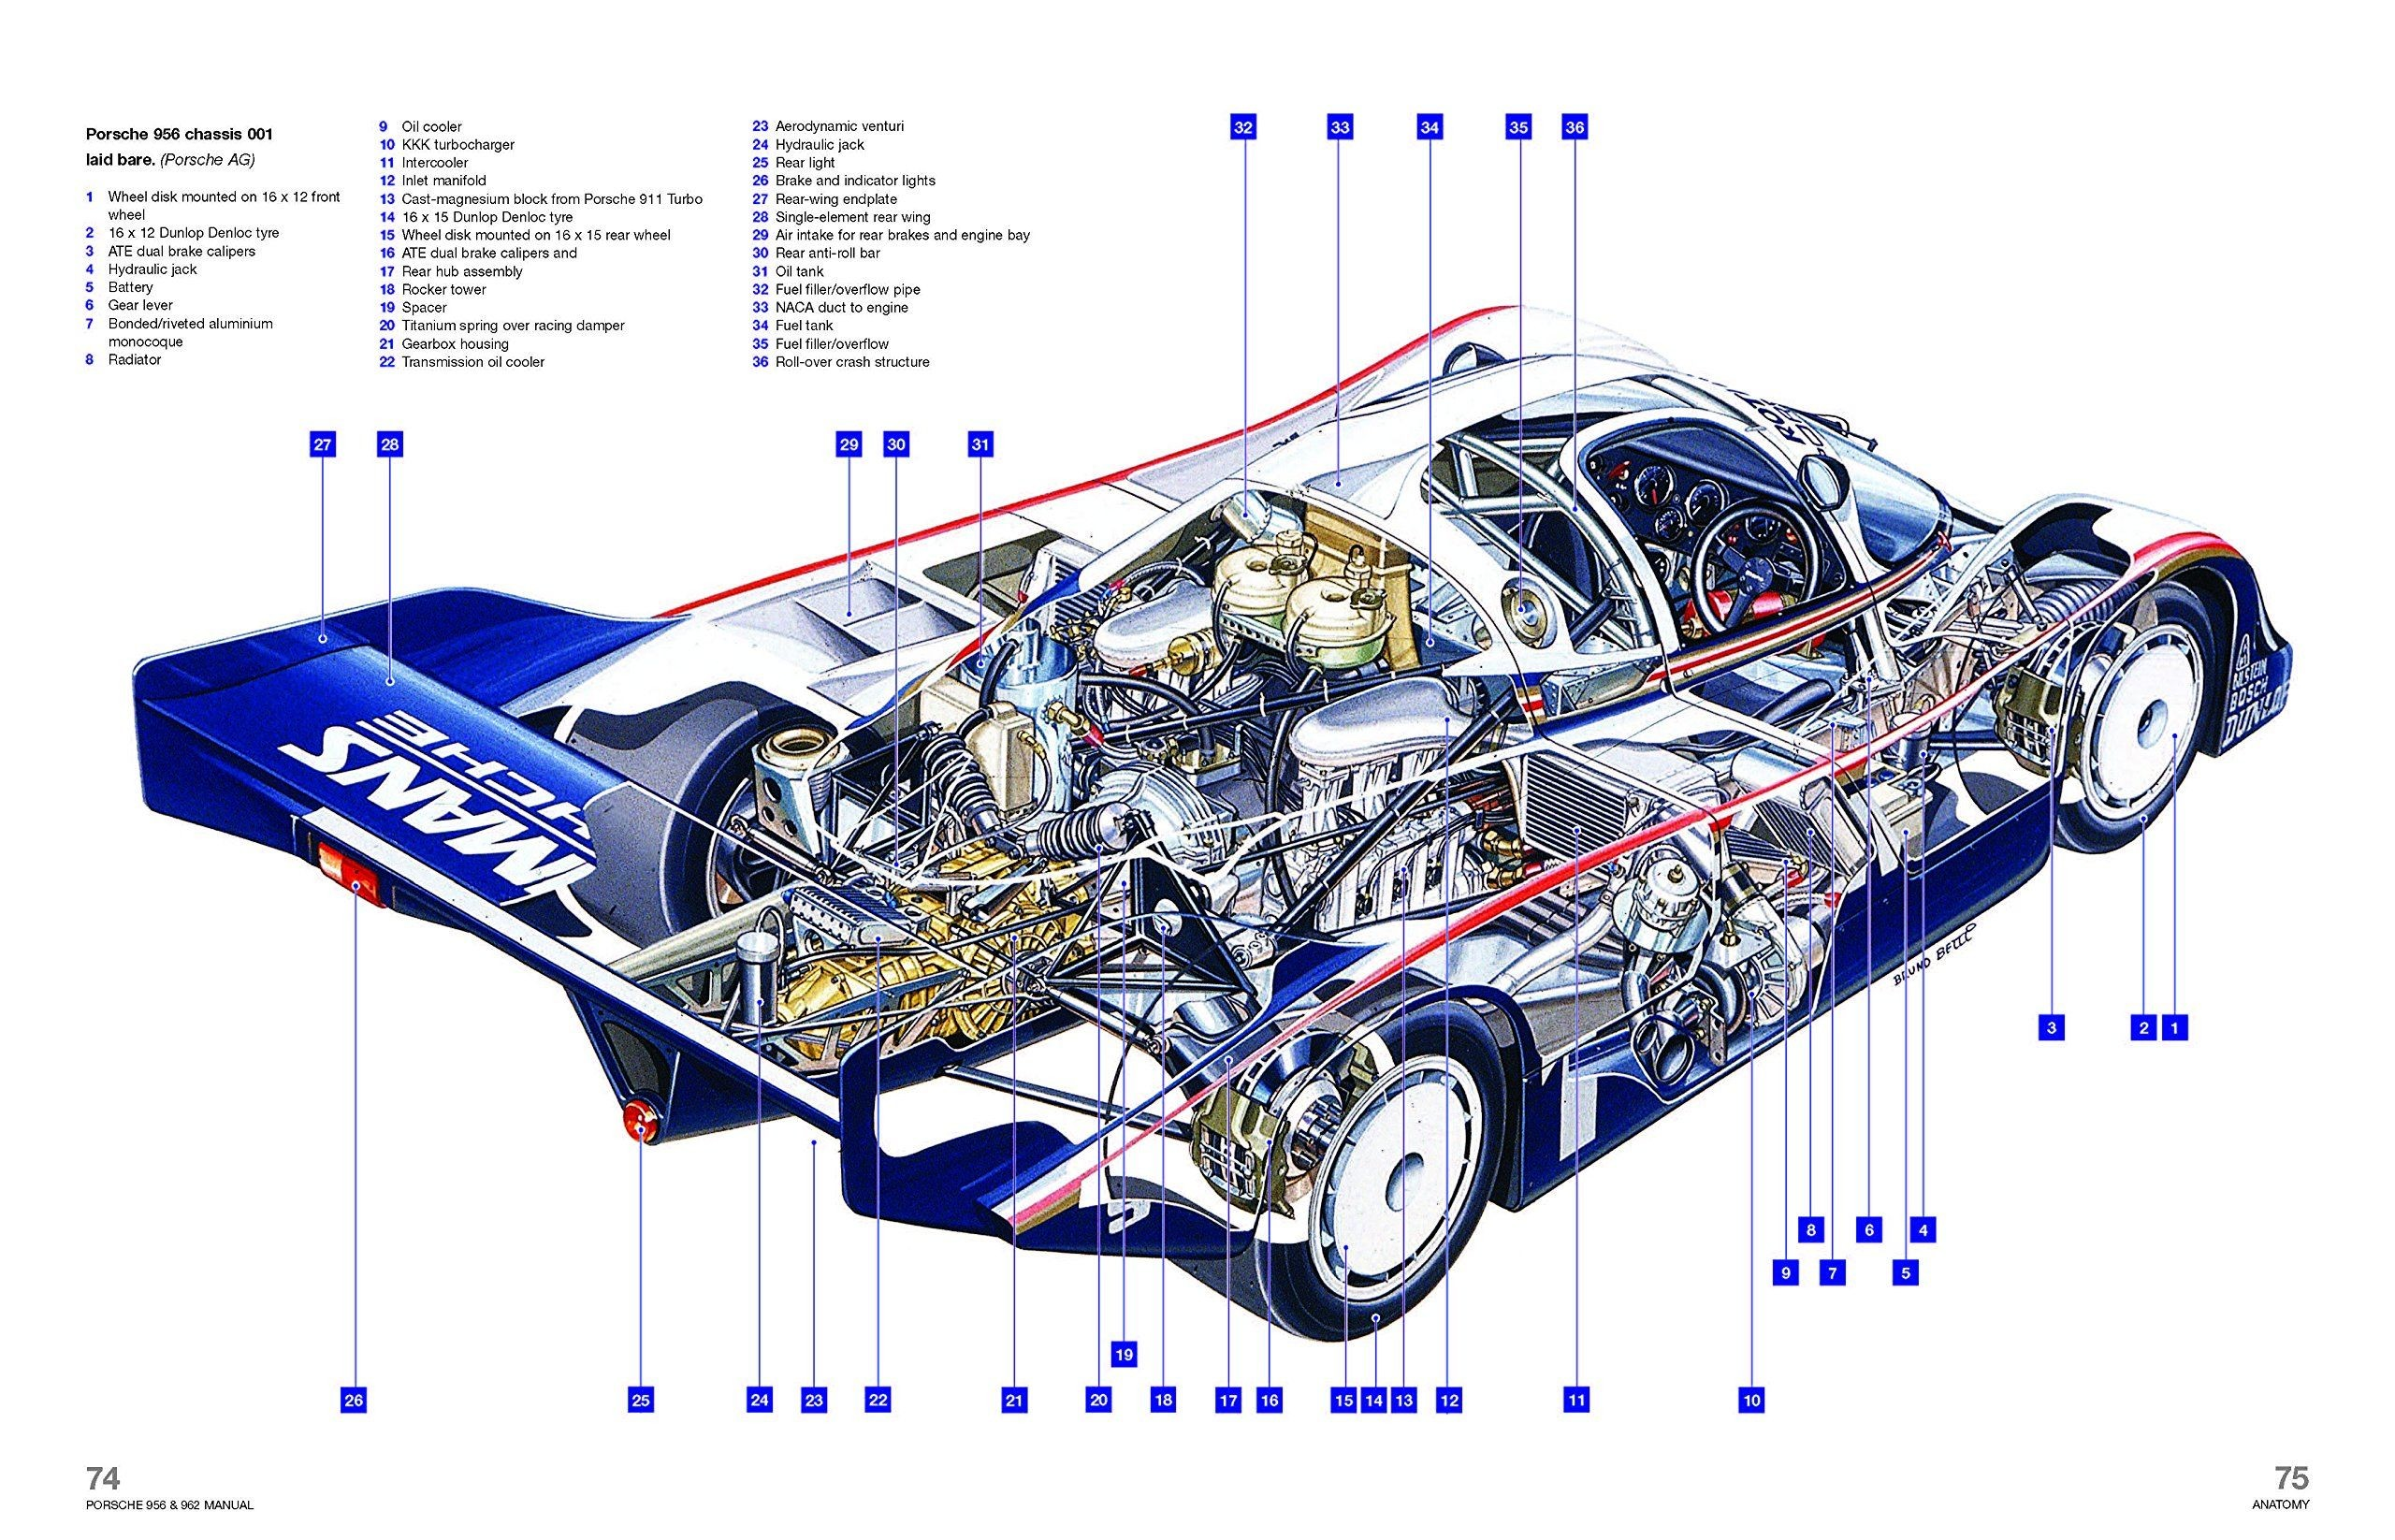 Diagram Of Car Chassis Technical Drawings Of Mercedes 2014 2016 Cars Of Diagram Of Car Chassis